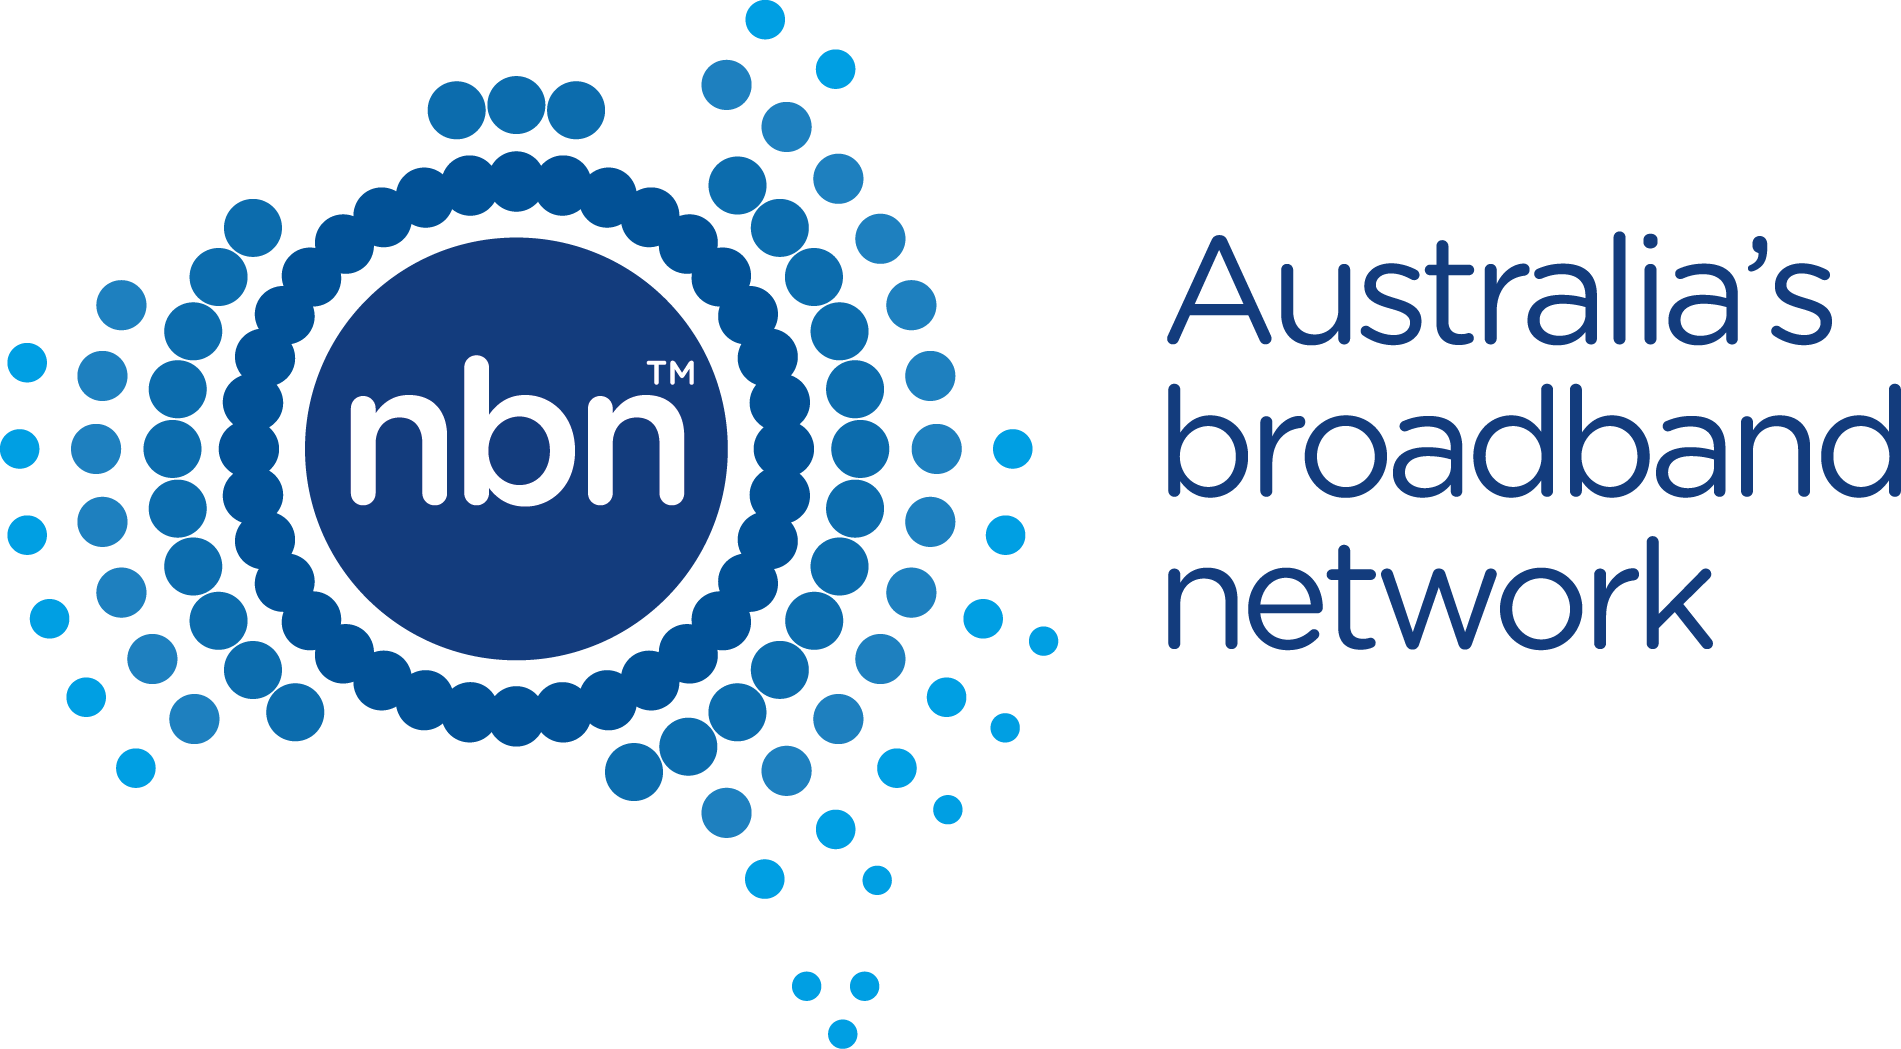 NBN Australia's broadband network